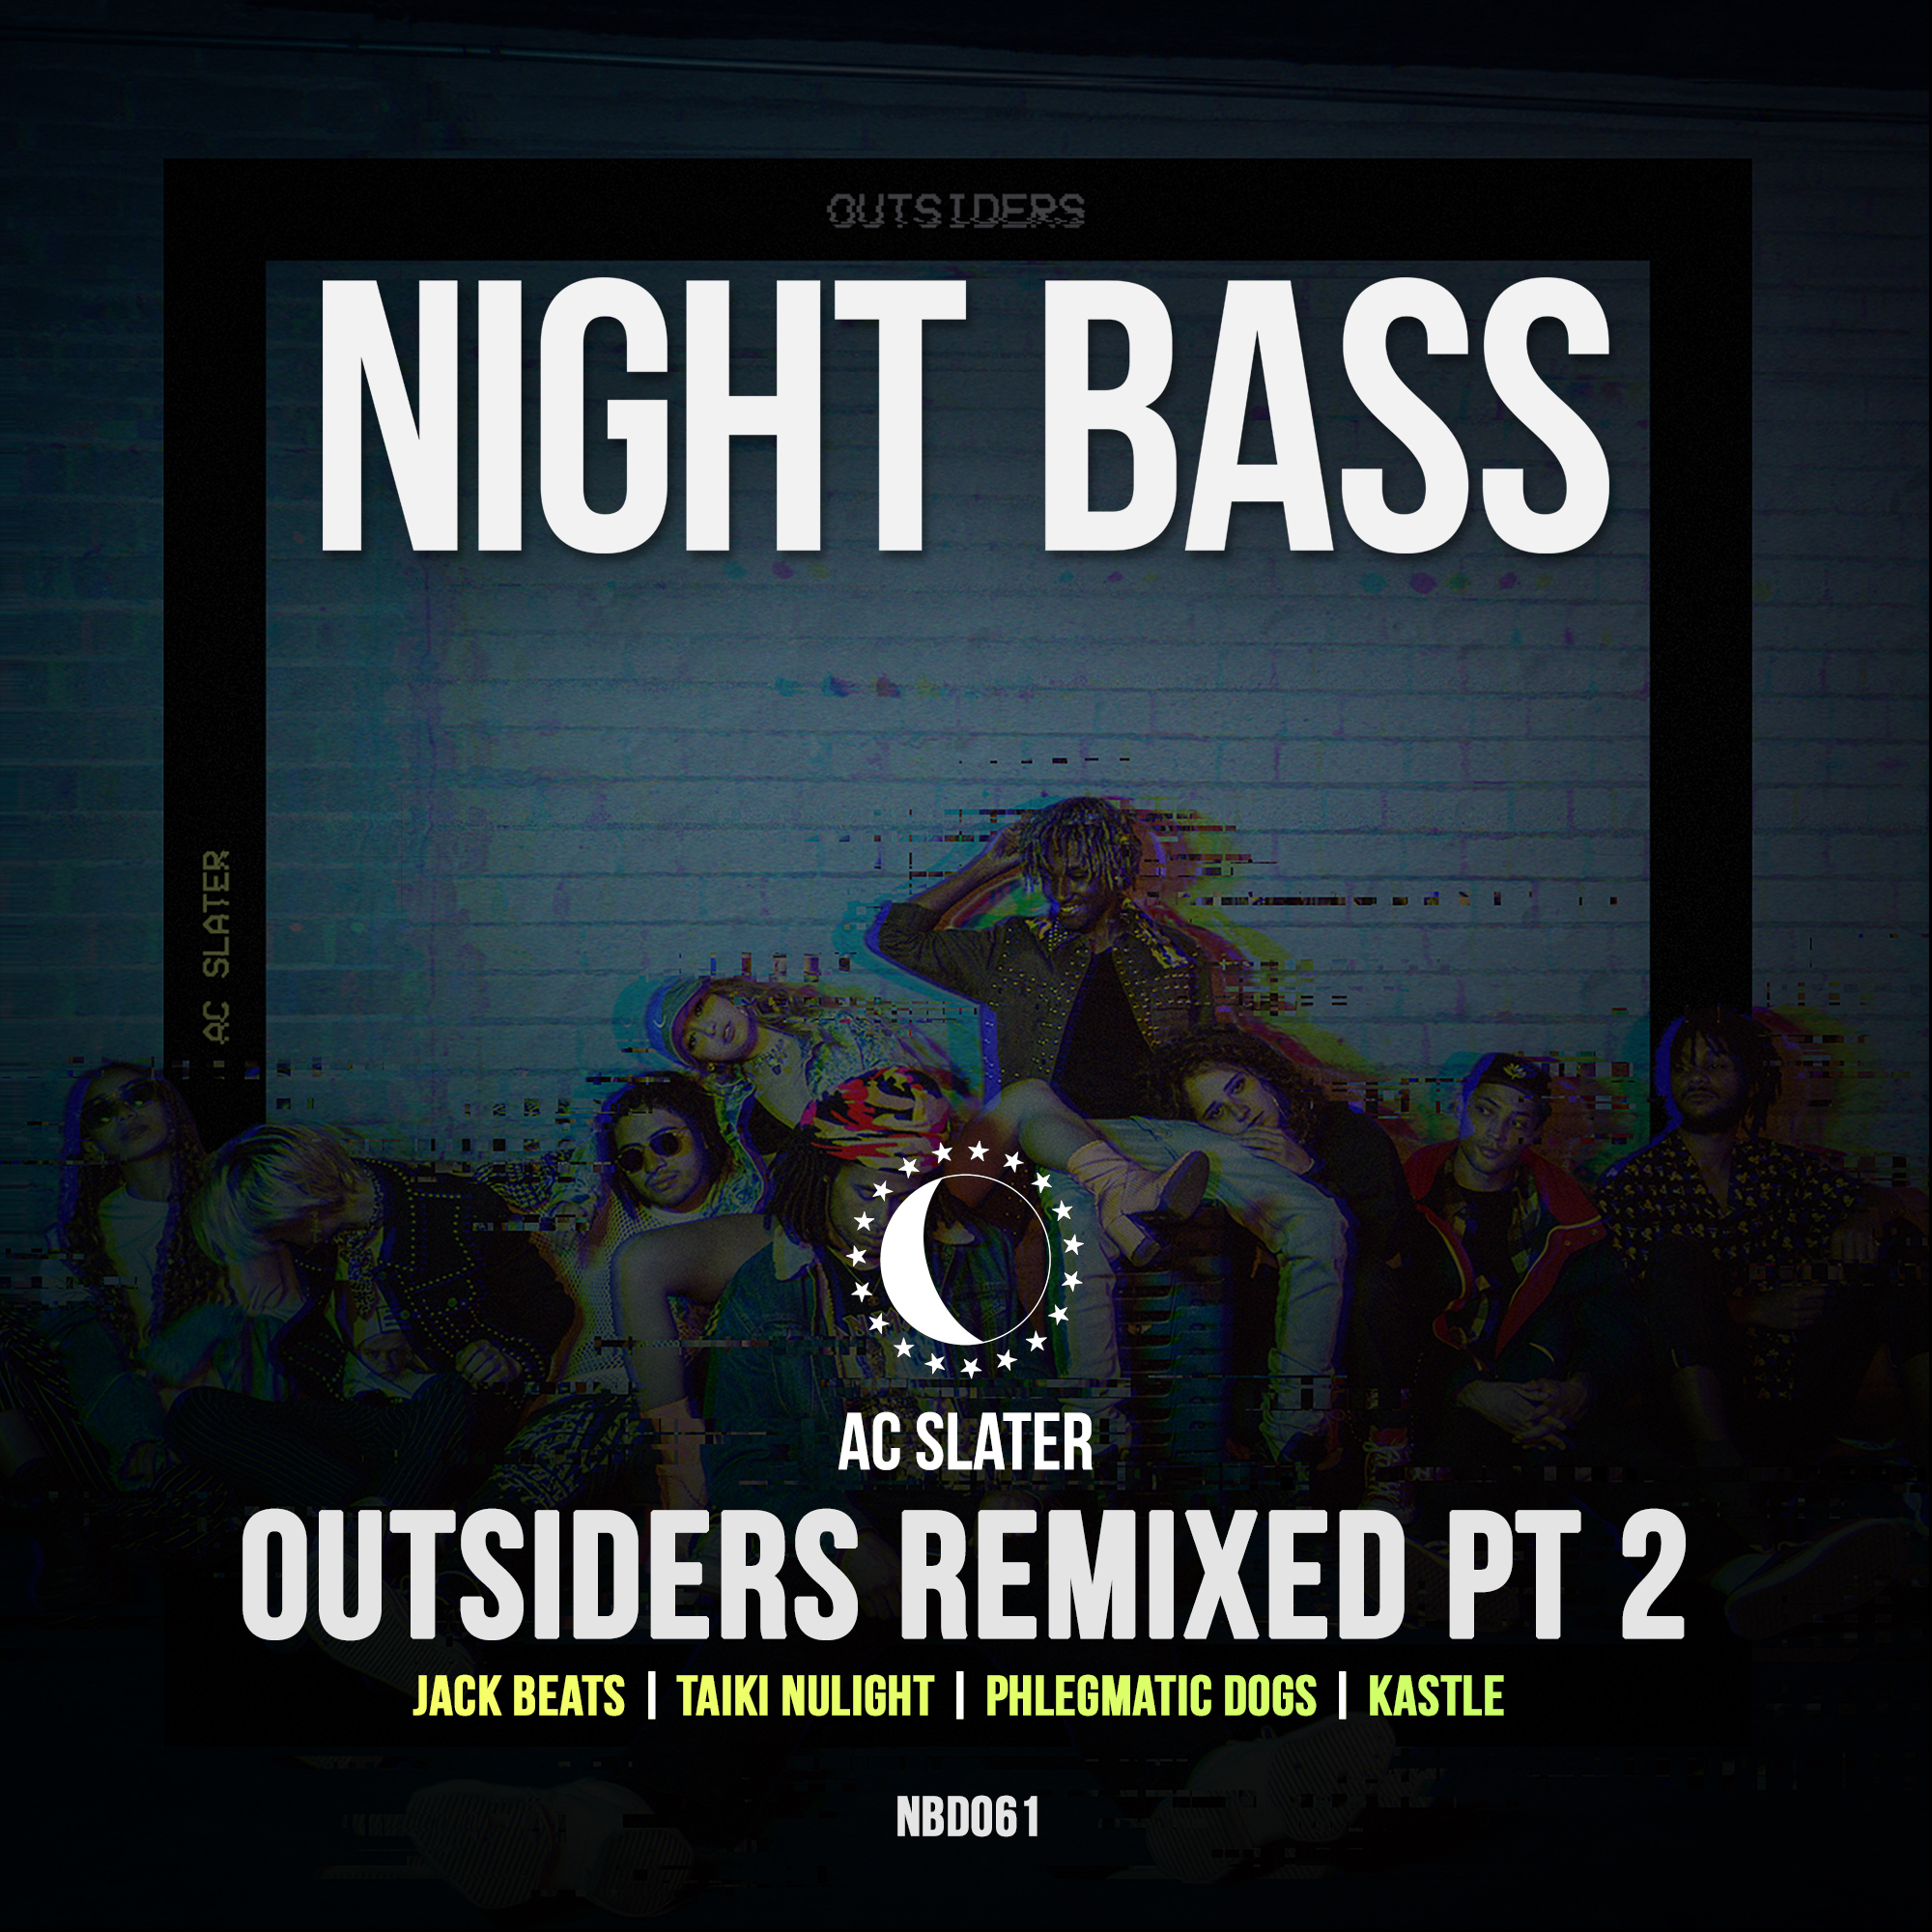 NBD061 - Outsiders Remixed Pt 2.jpg